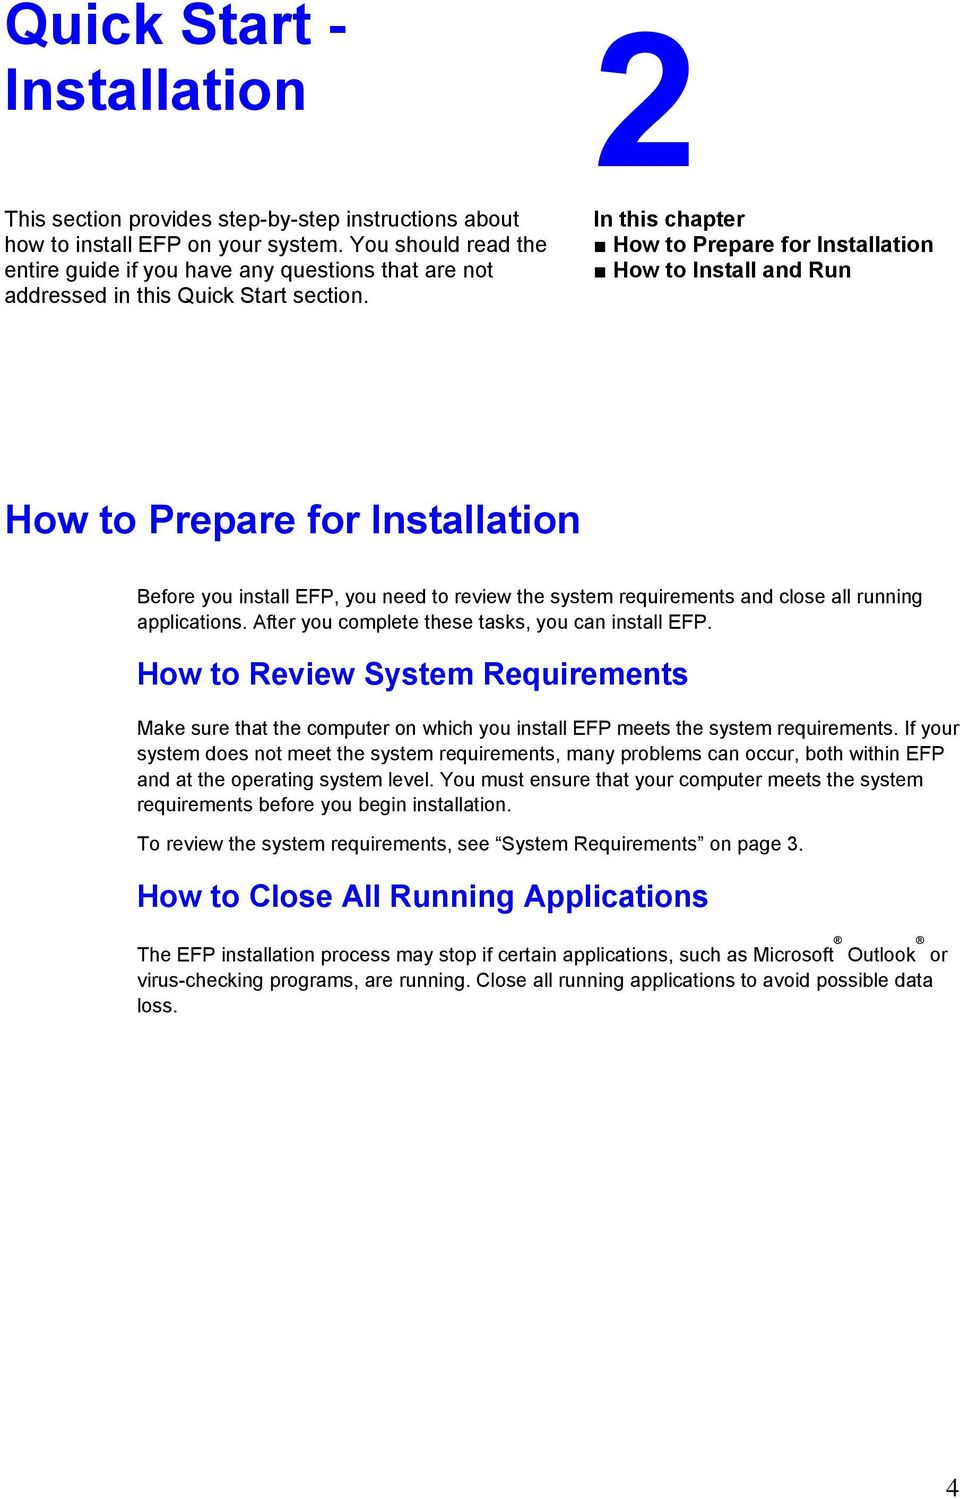 In this chapter How to Prepare for Installation How to Install and Run How to Prepare for Installation Before you install EFP, you need to review the system requirements and close all running